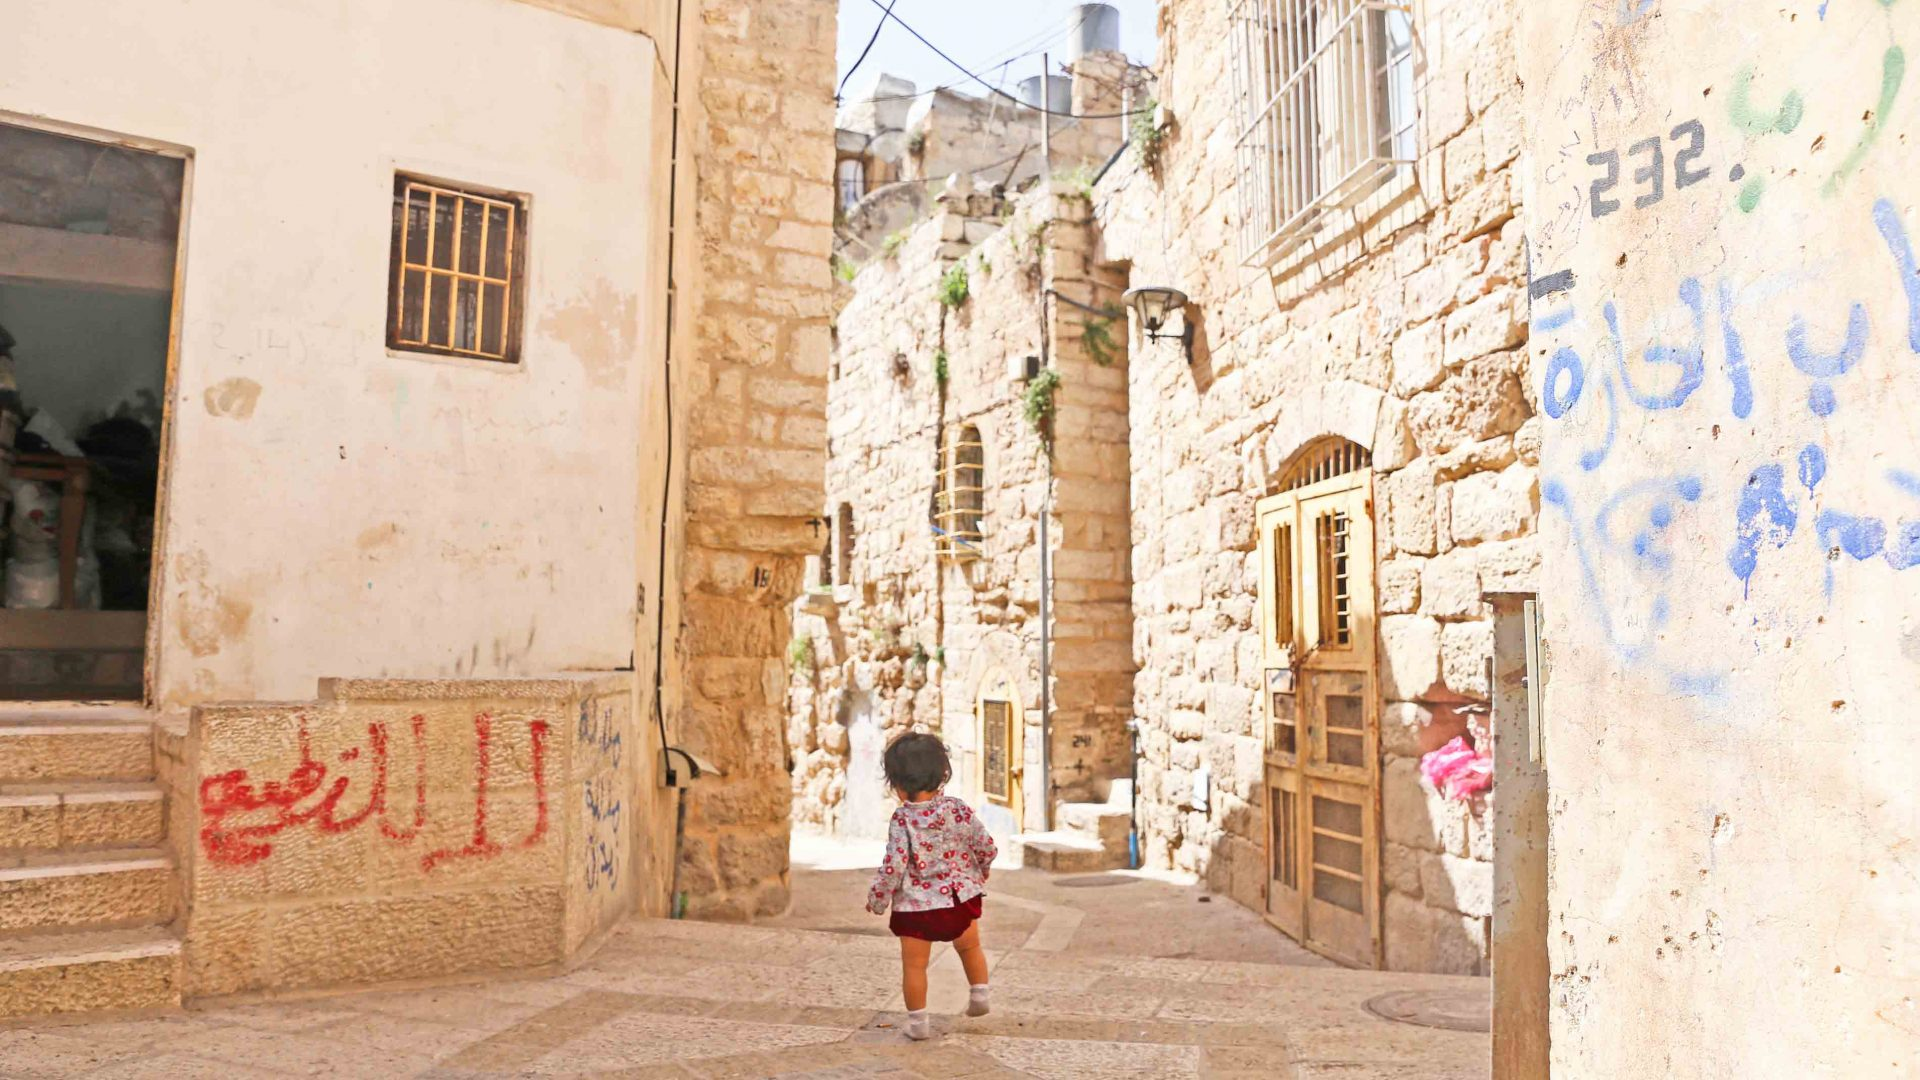 Baby Gia Sereni in Bethlehem in the West Bank, Palestine, while traveling with her mother.